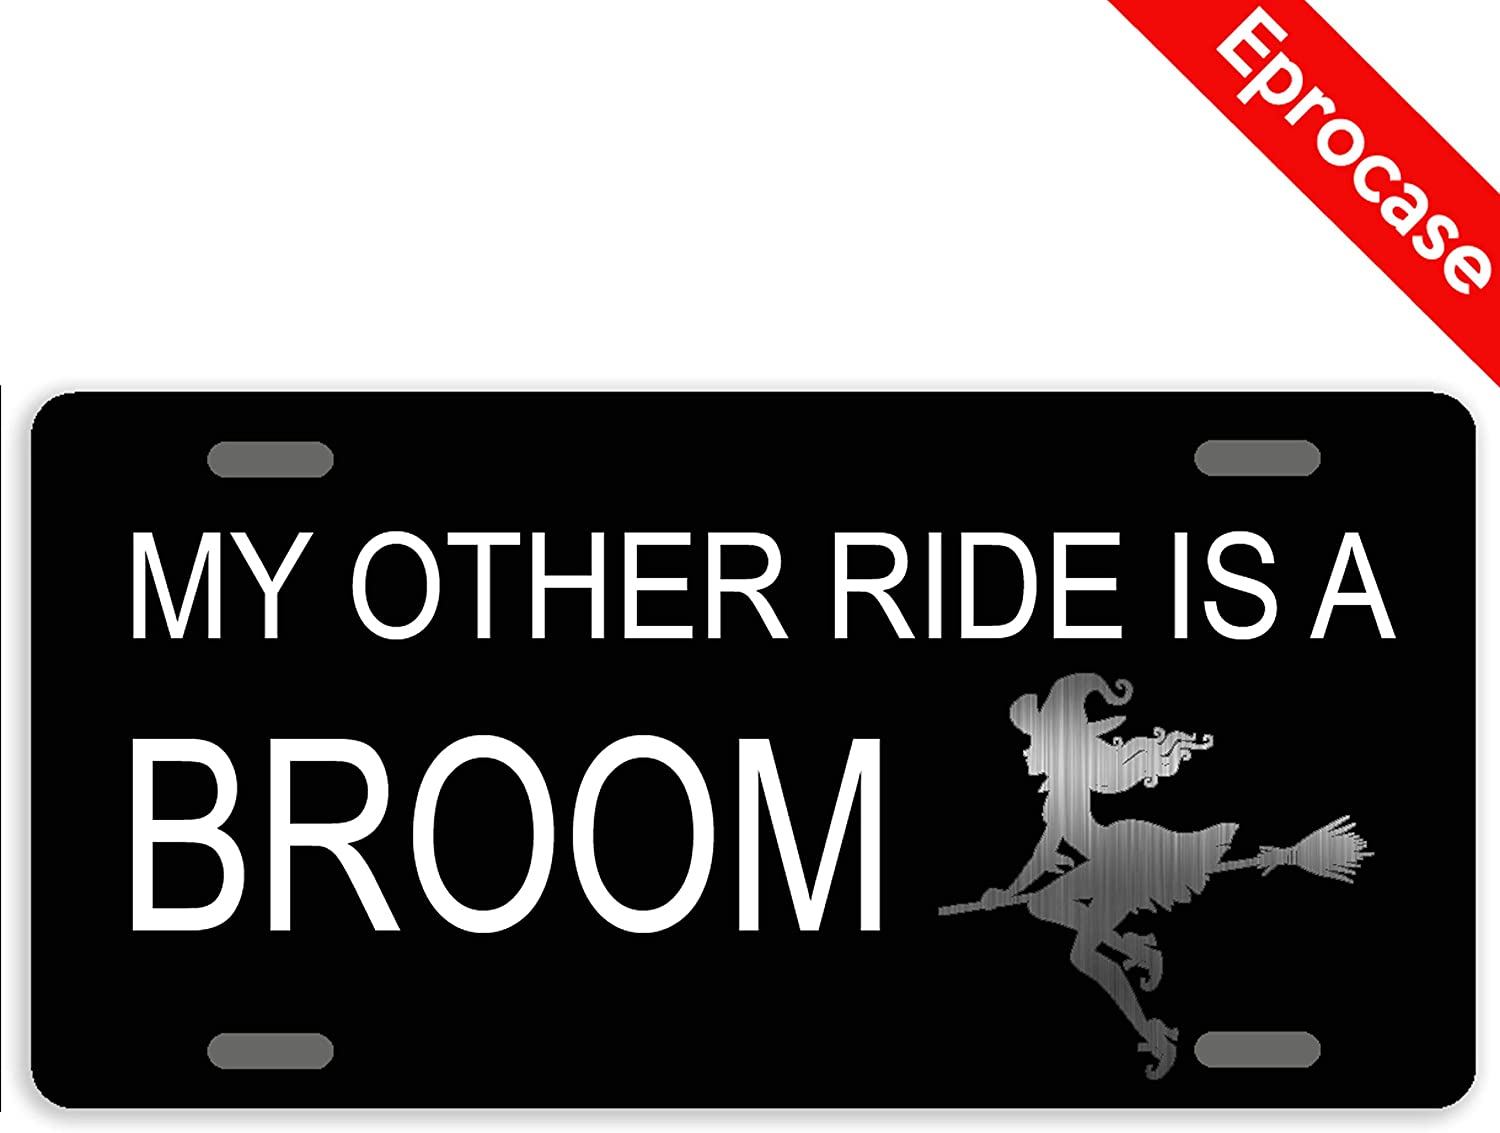 Eprocase Halloween Witch License Plate My A Other Philadelphia Mall Super popular specialty store Broom is Ride